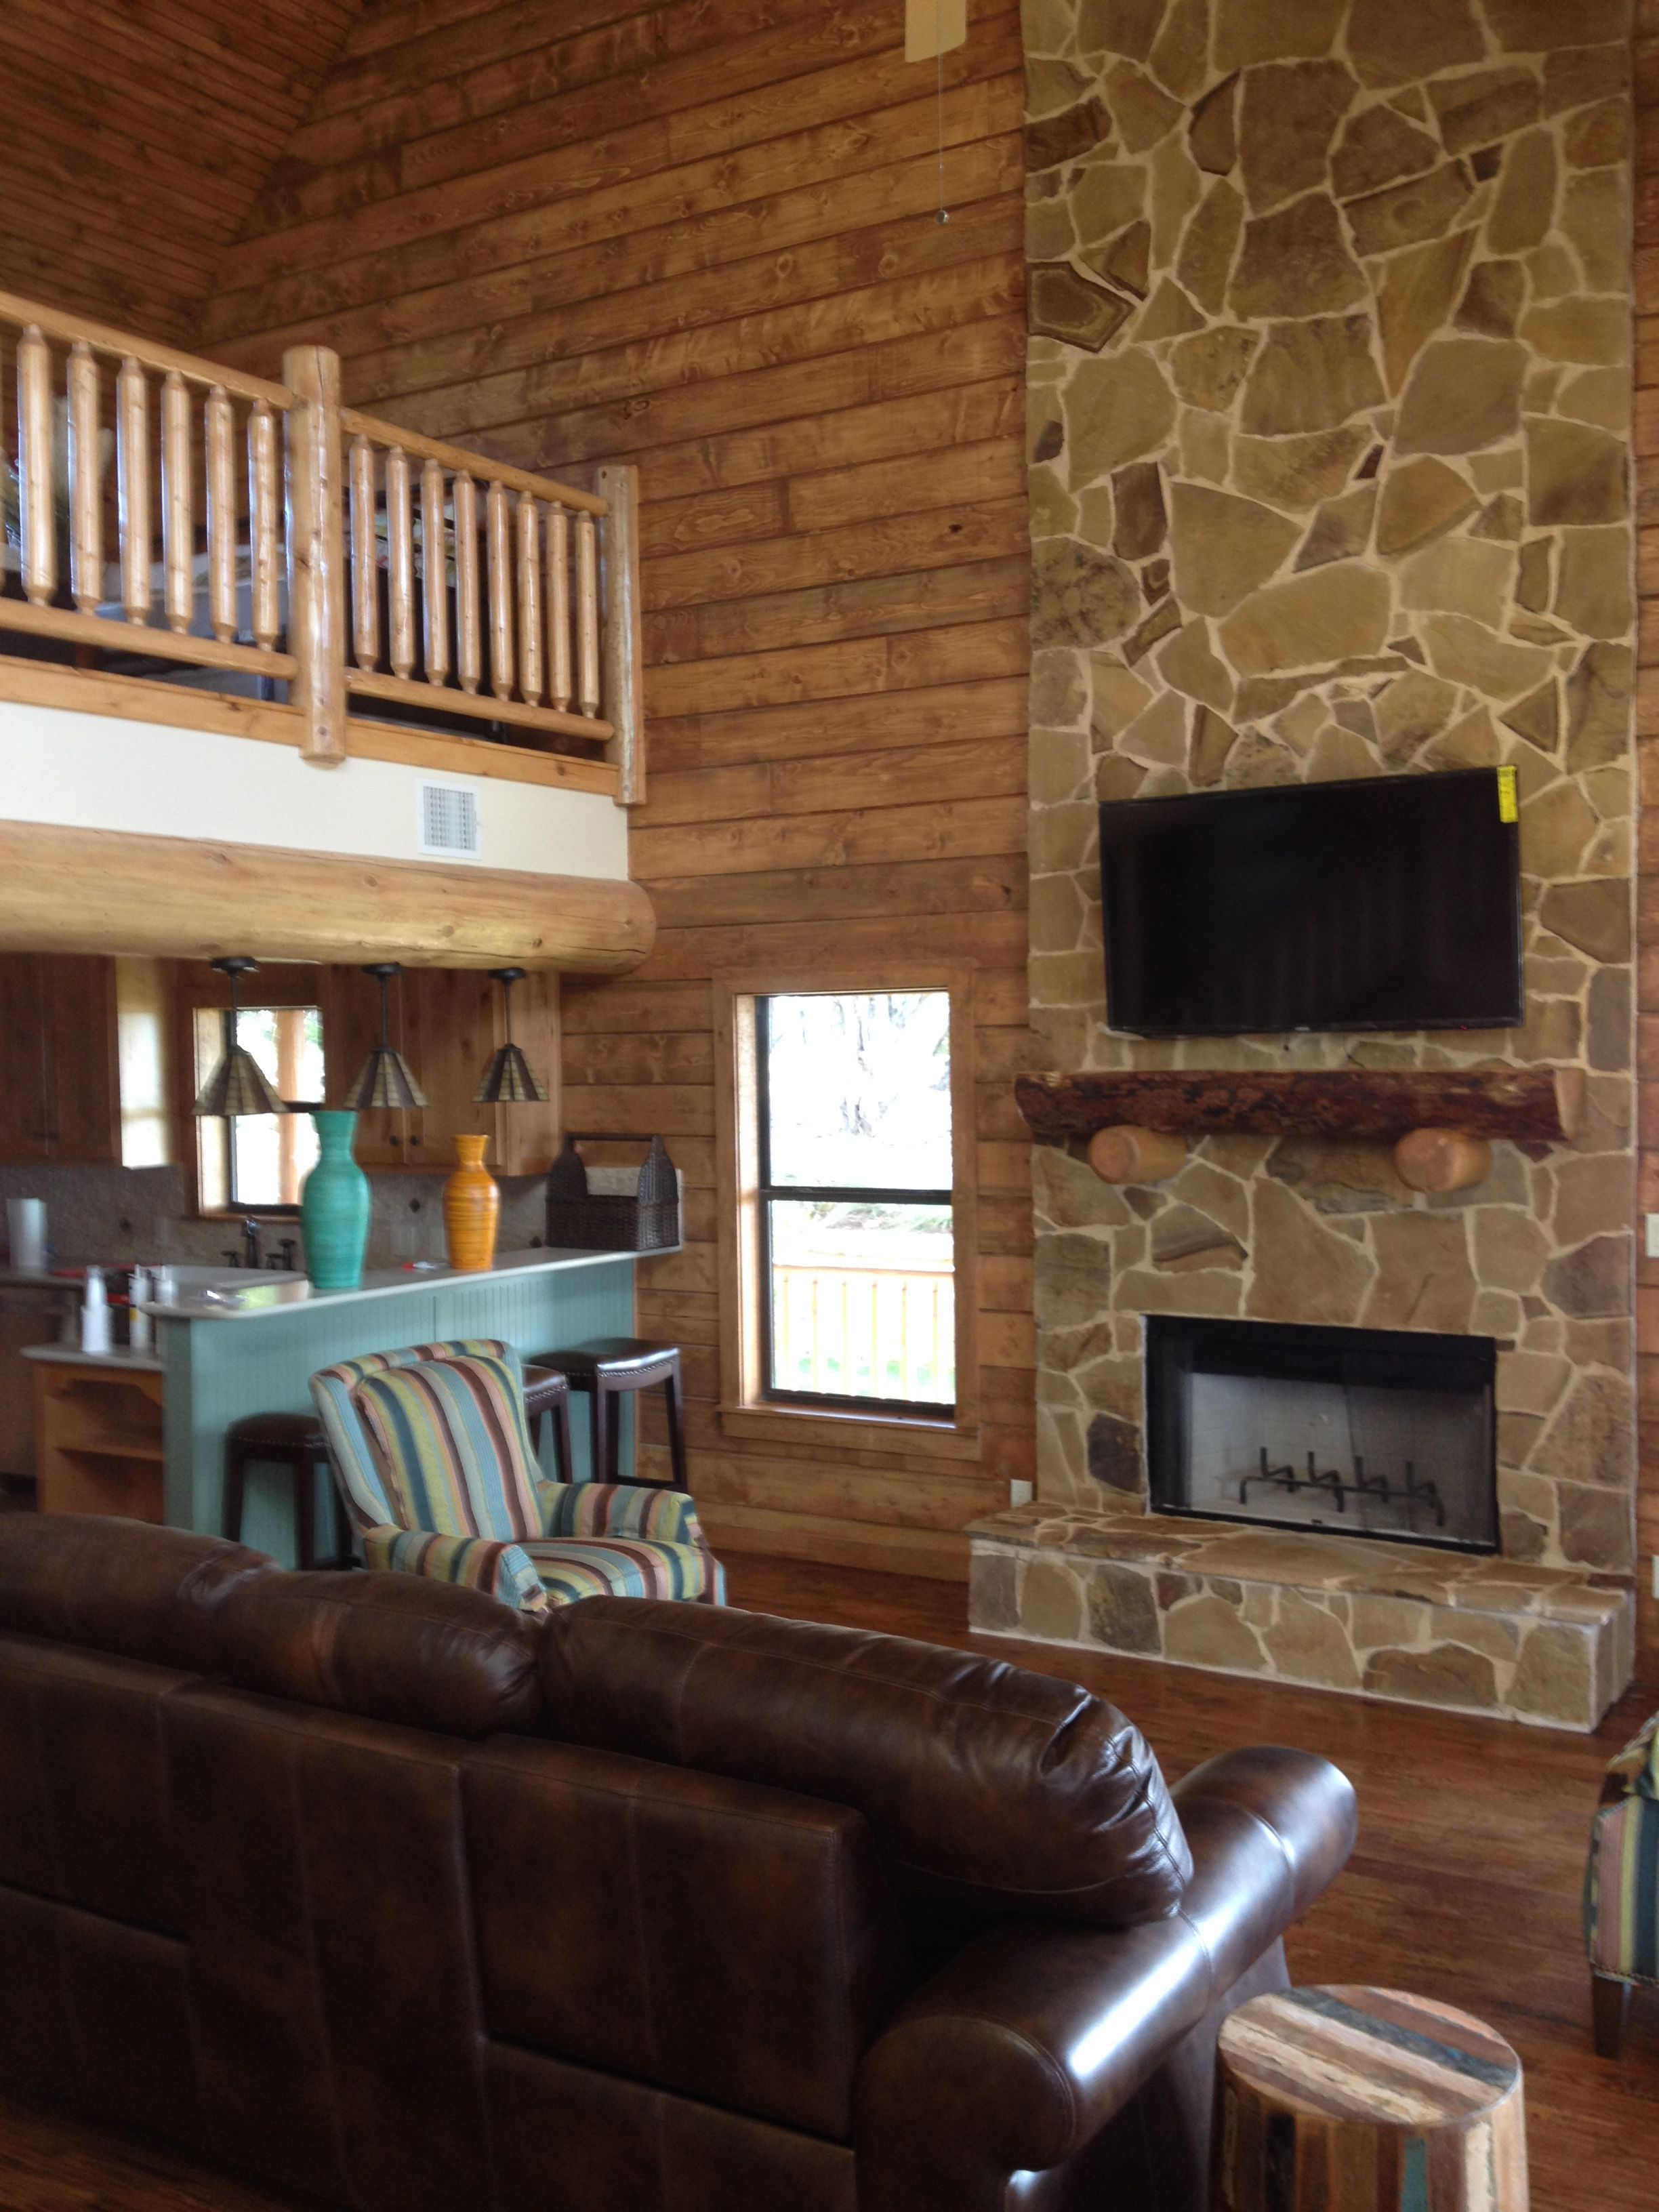 Interiors Were A Mix Of Traditional Drywall Exposed Lodge